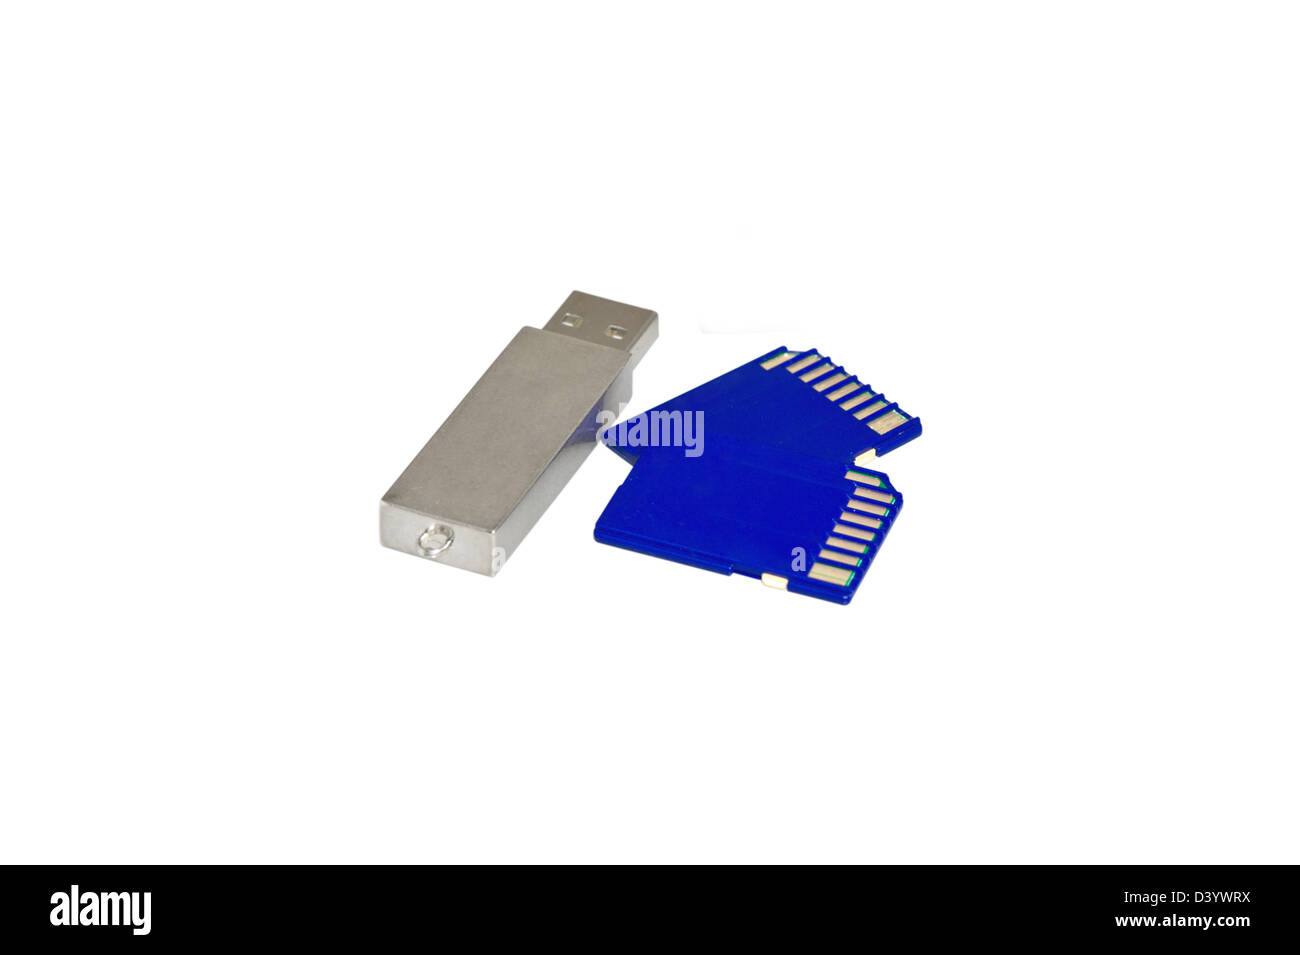 usb devices for storing information on a white background - Stock Image